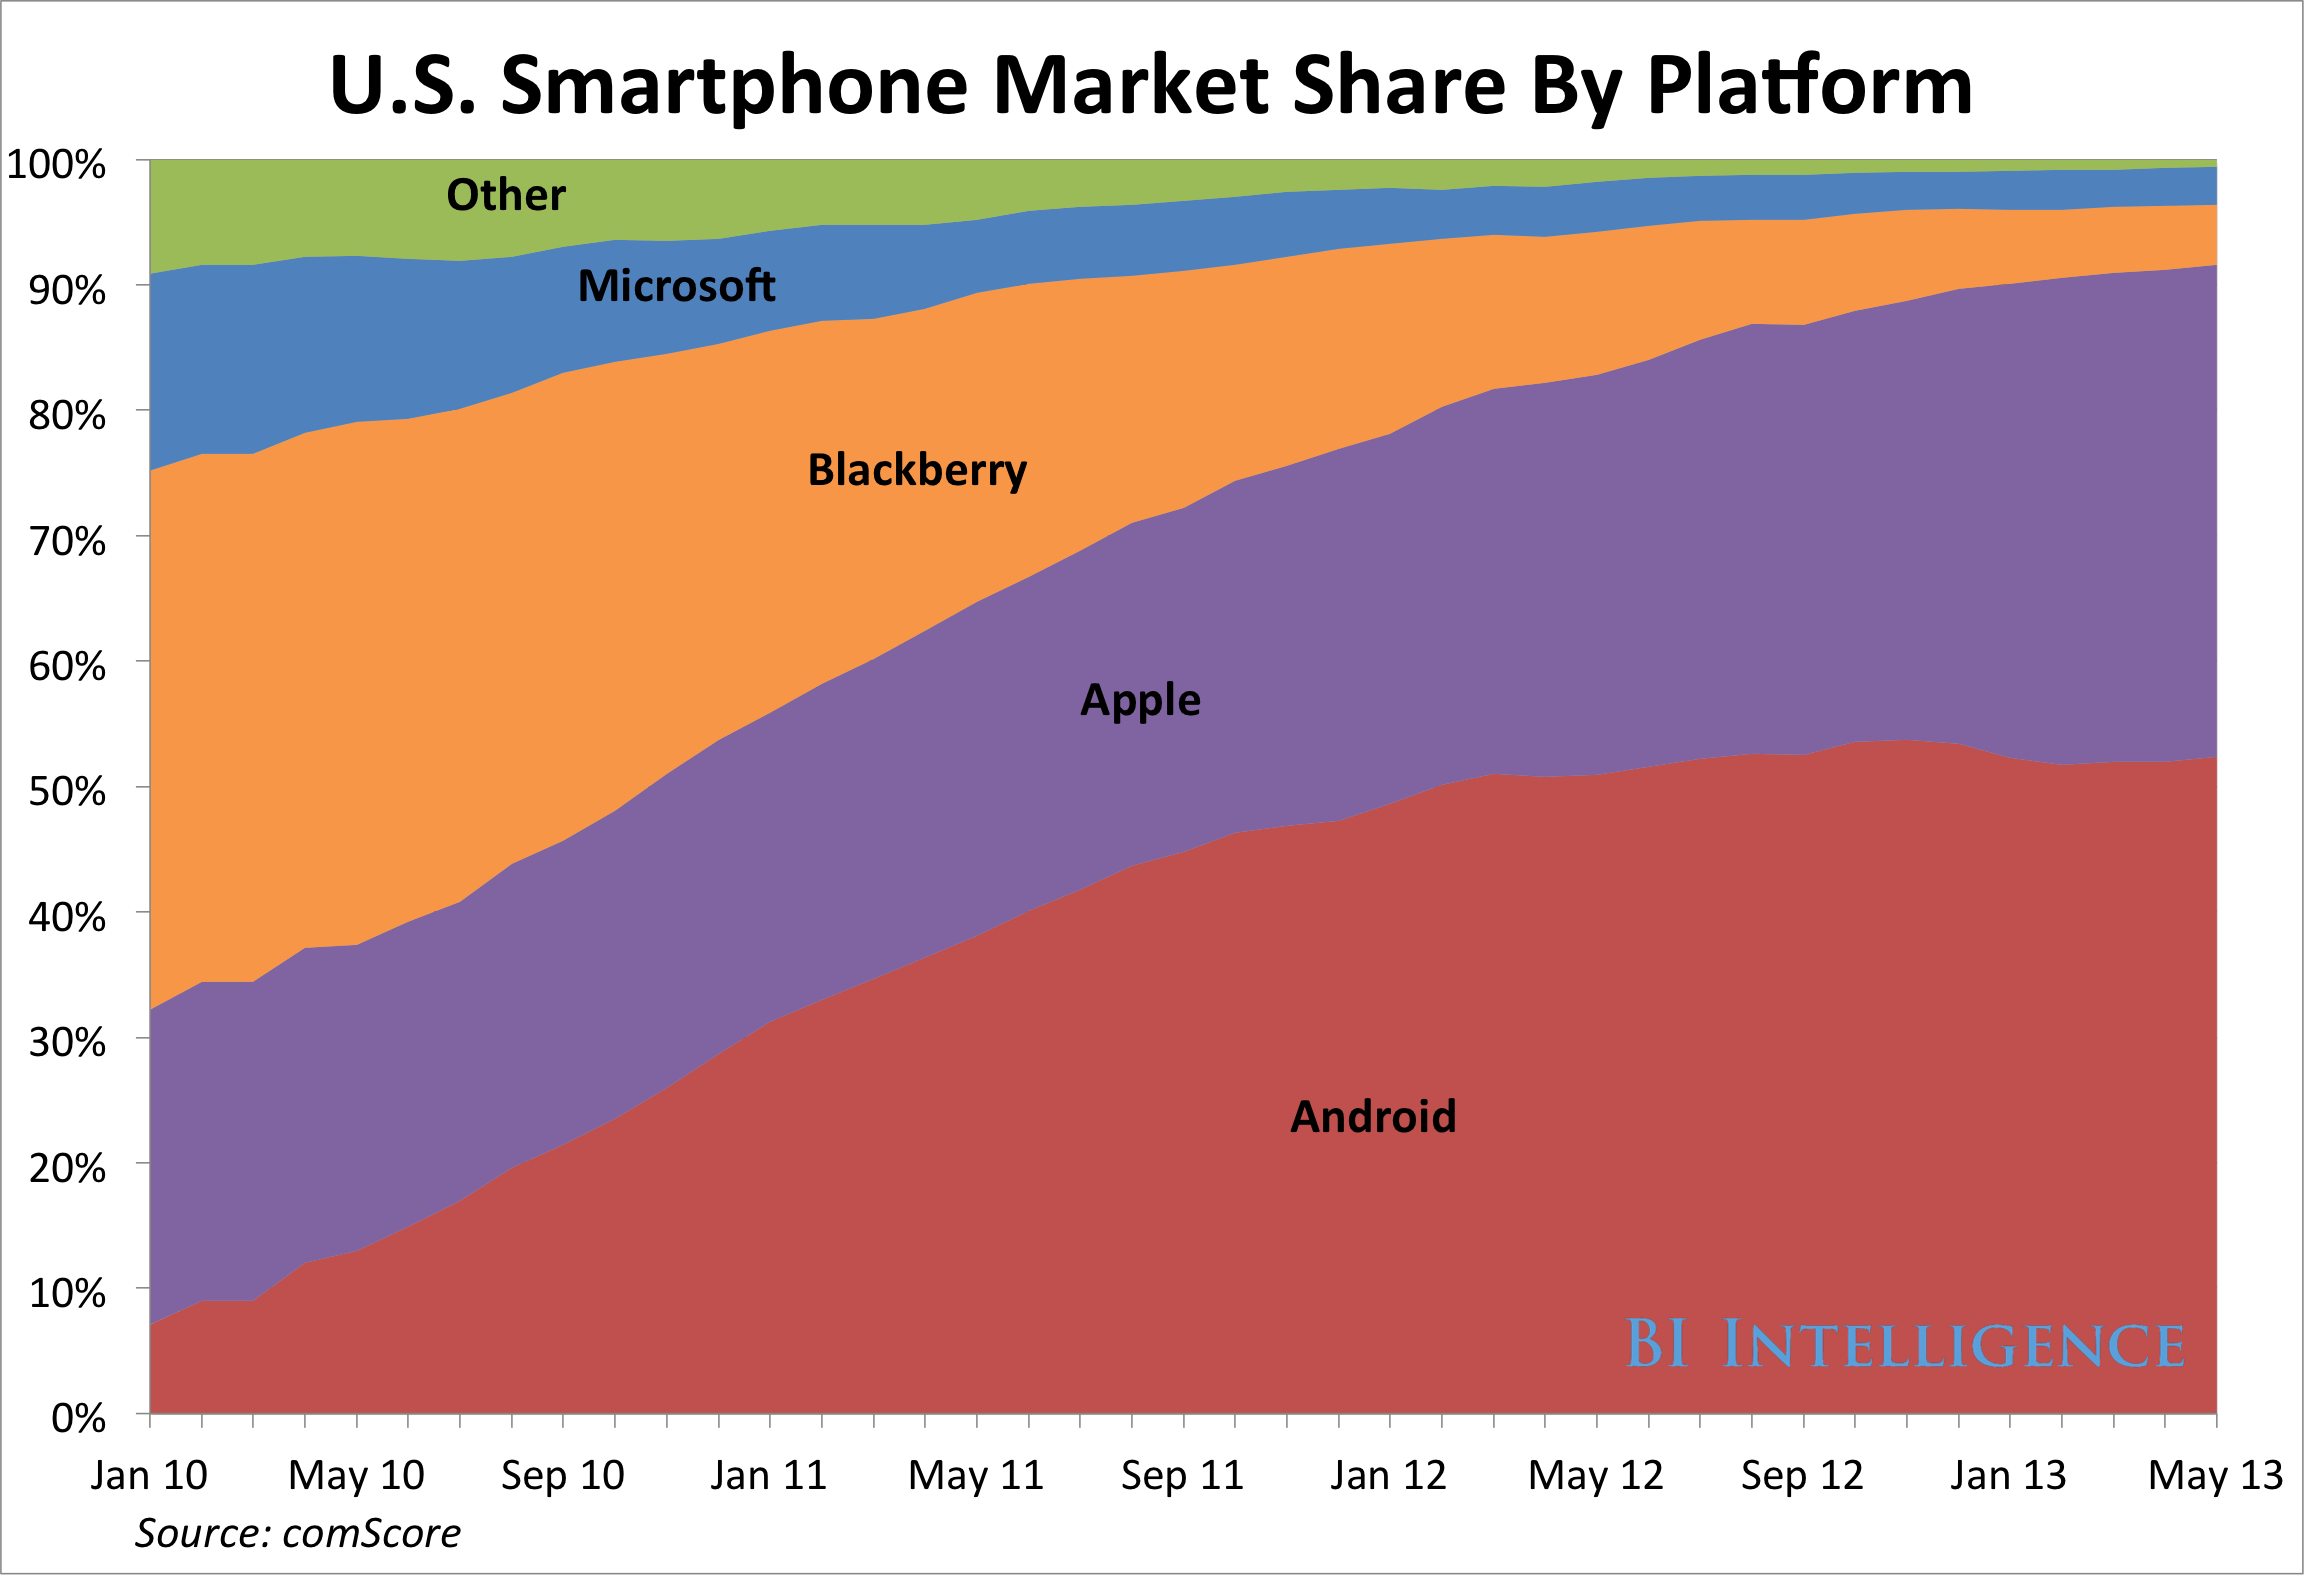 Android Halts iPhone's Advance In The U.S. Smartphone Market | Business Insider